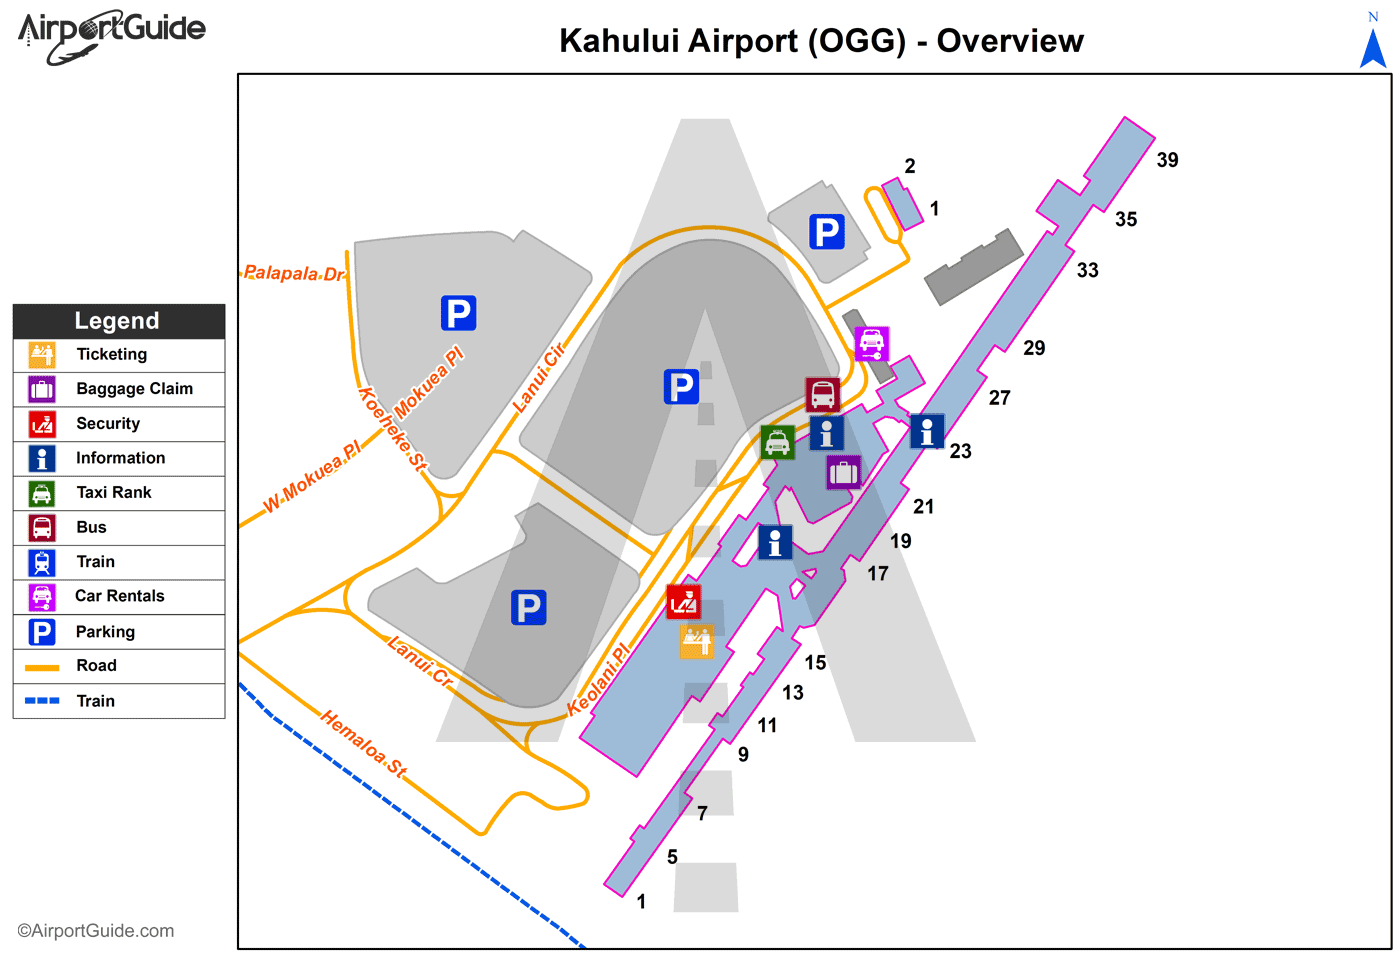 Kahului - Kahului (OGG) Airport Terminal Map - Overview